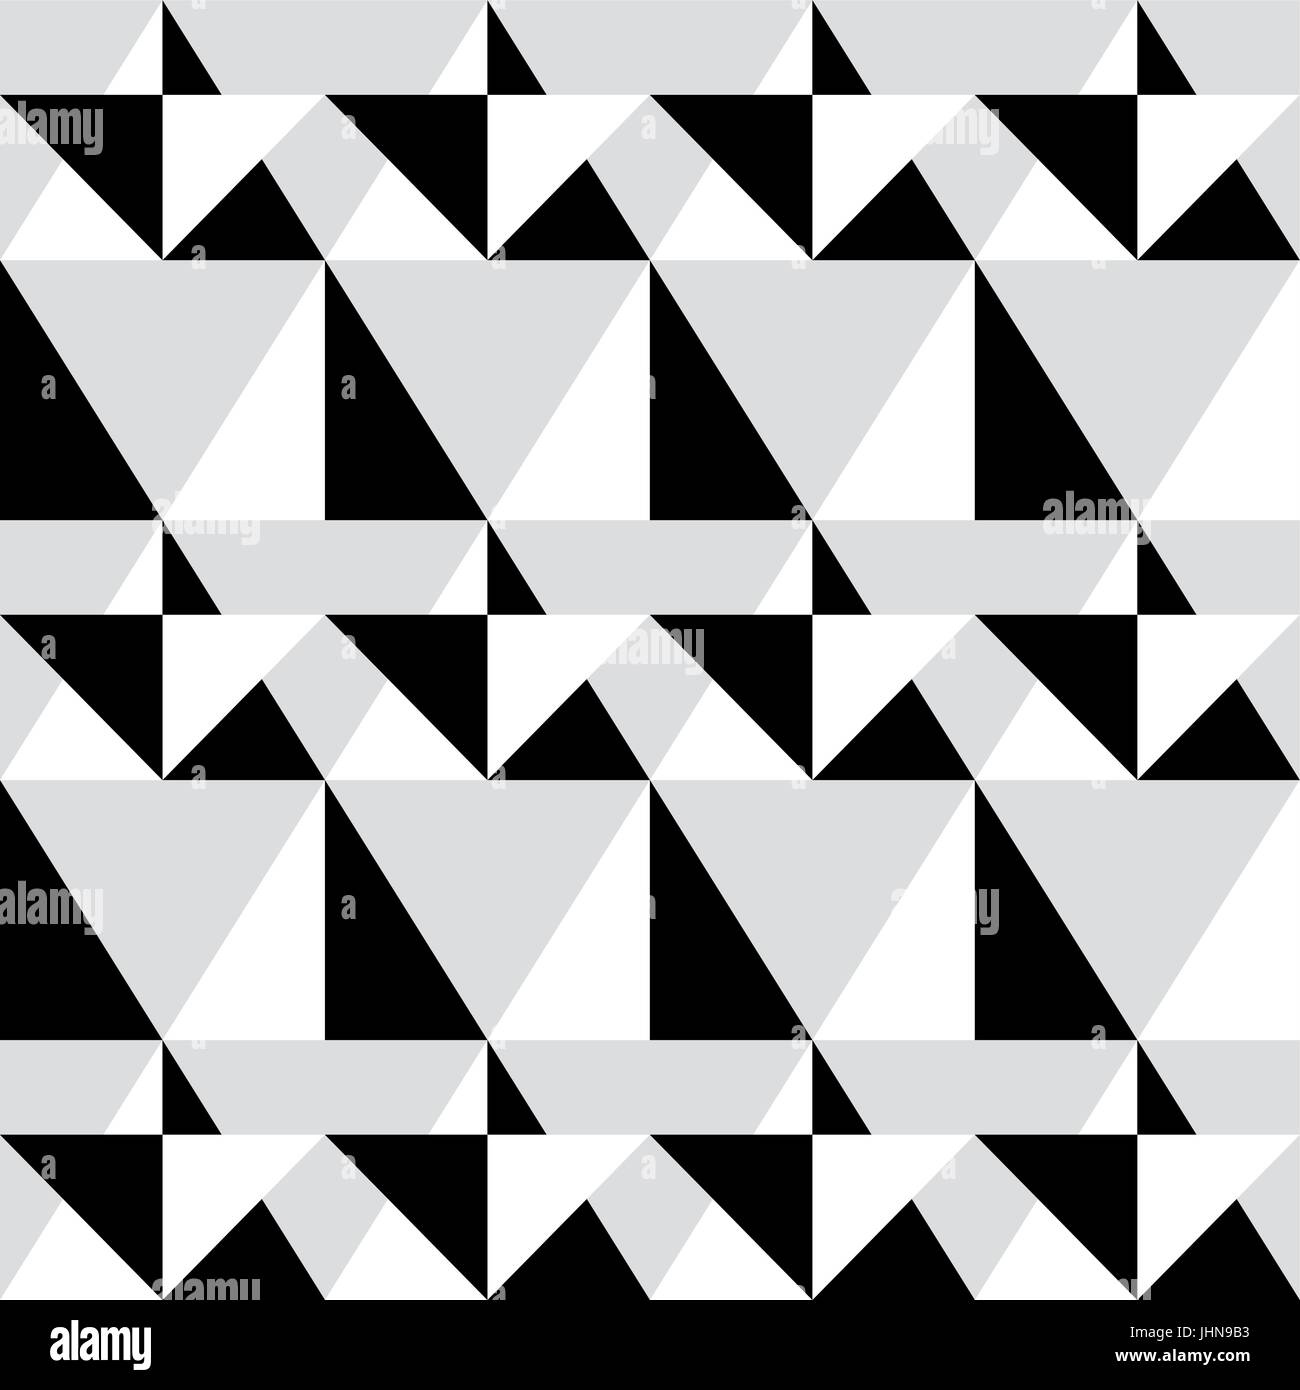 Geometric seamless pattern - abstract black and white shapes, illustration background - Stock Vector